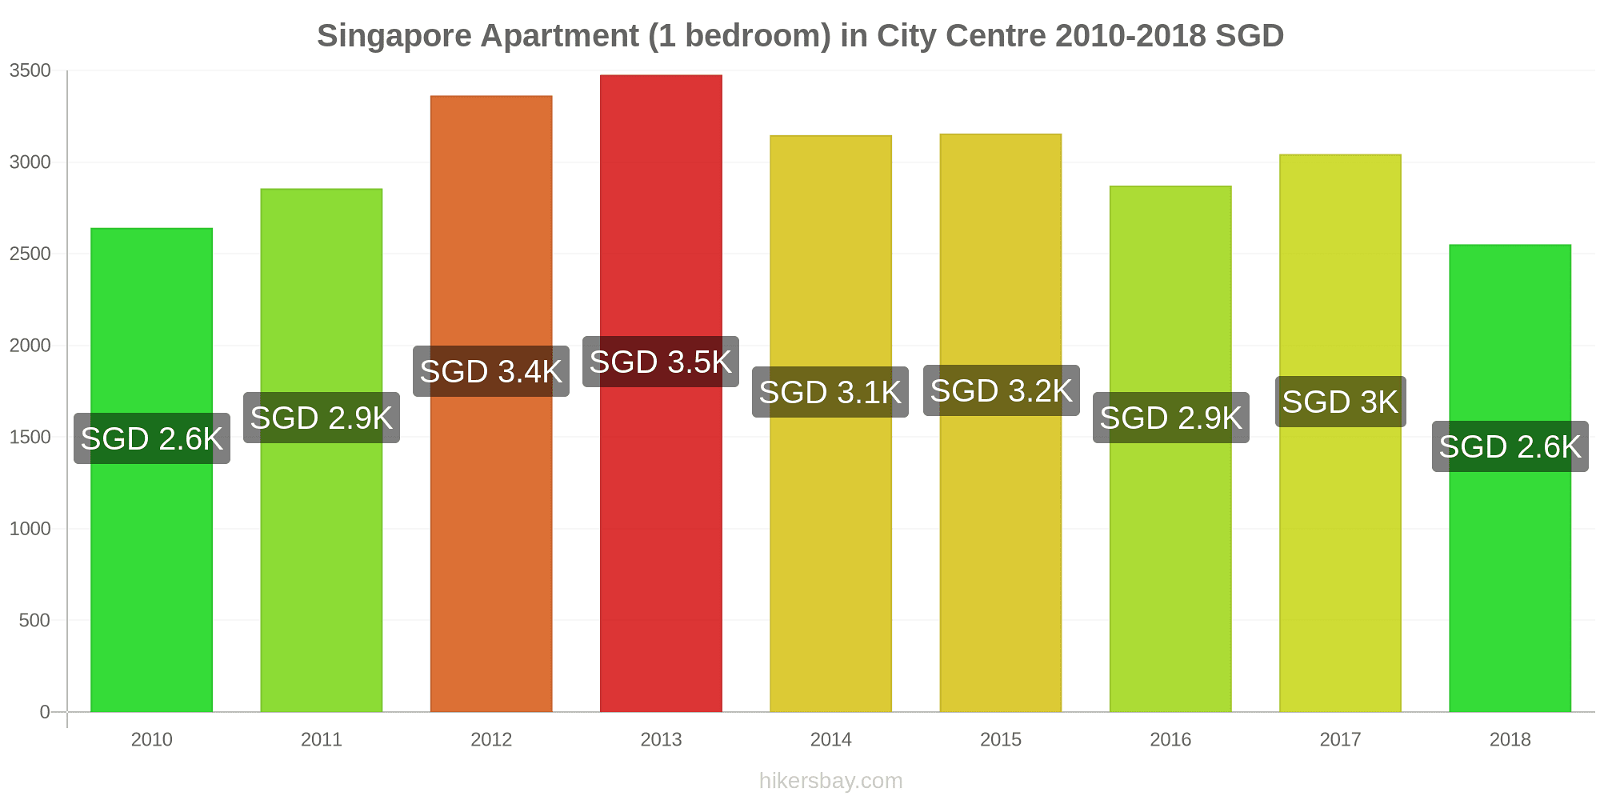 Singapore price changes Apartment (1 bedroom) in City Centre hikersbay.com